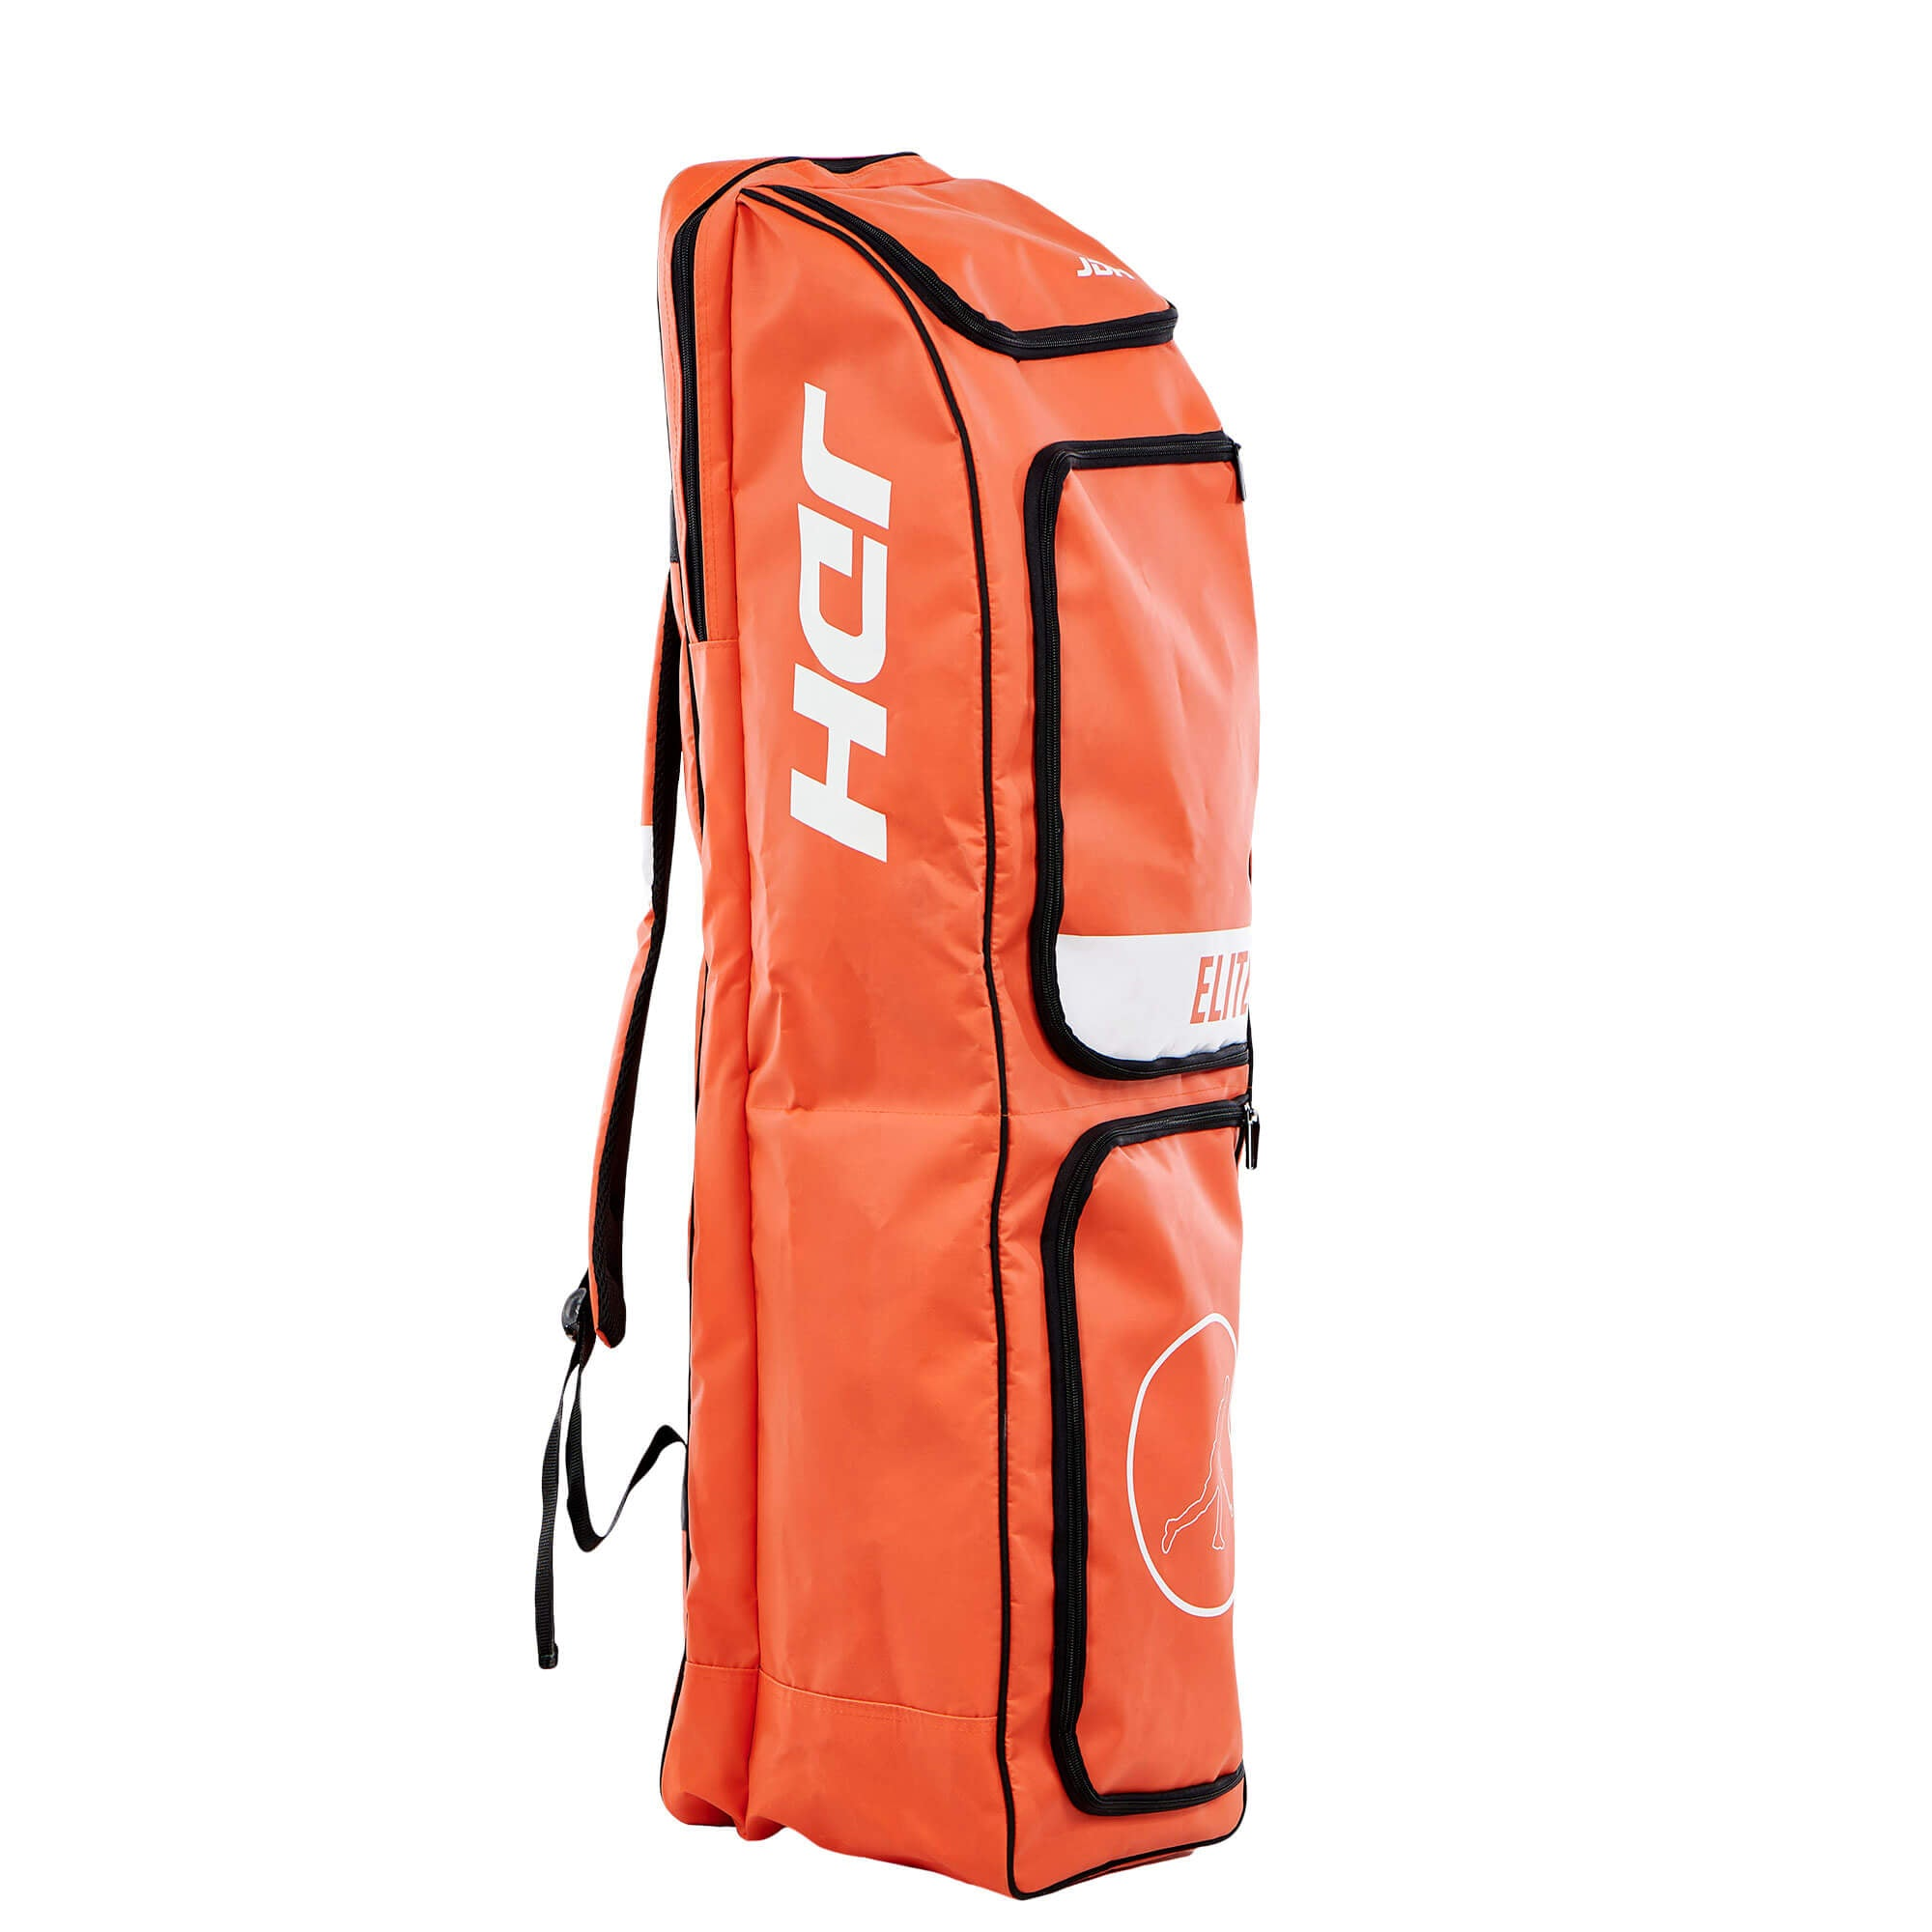 Elite Bag - Orange (2020)